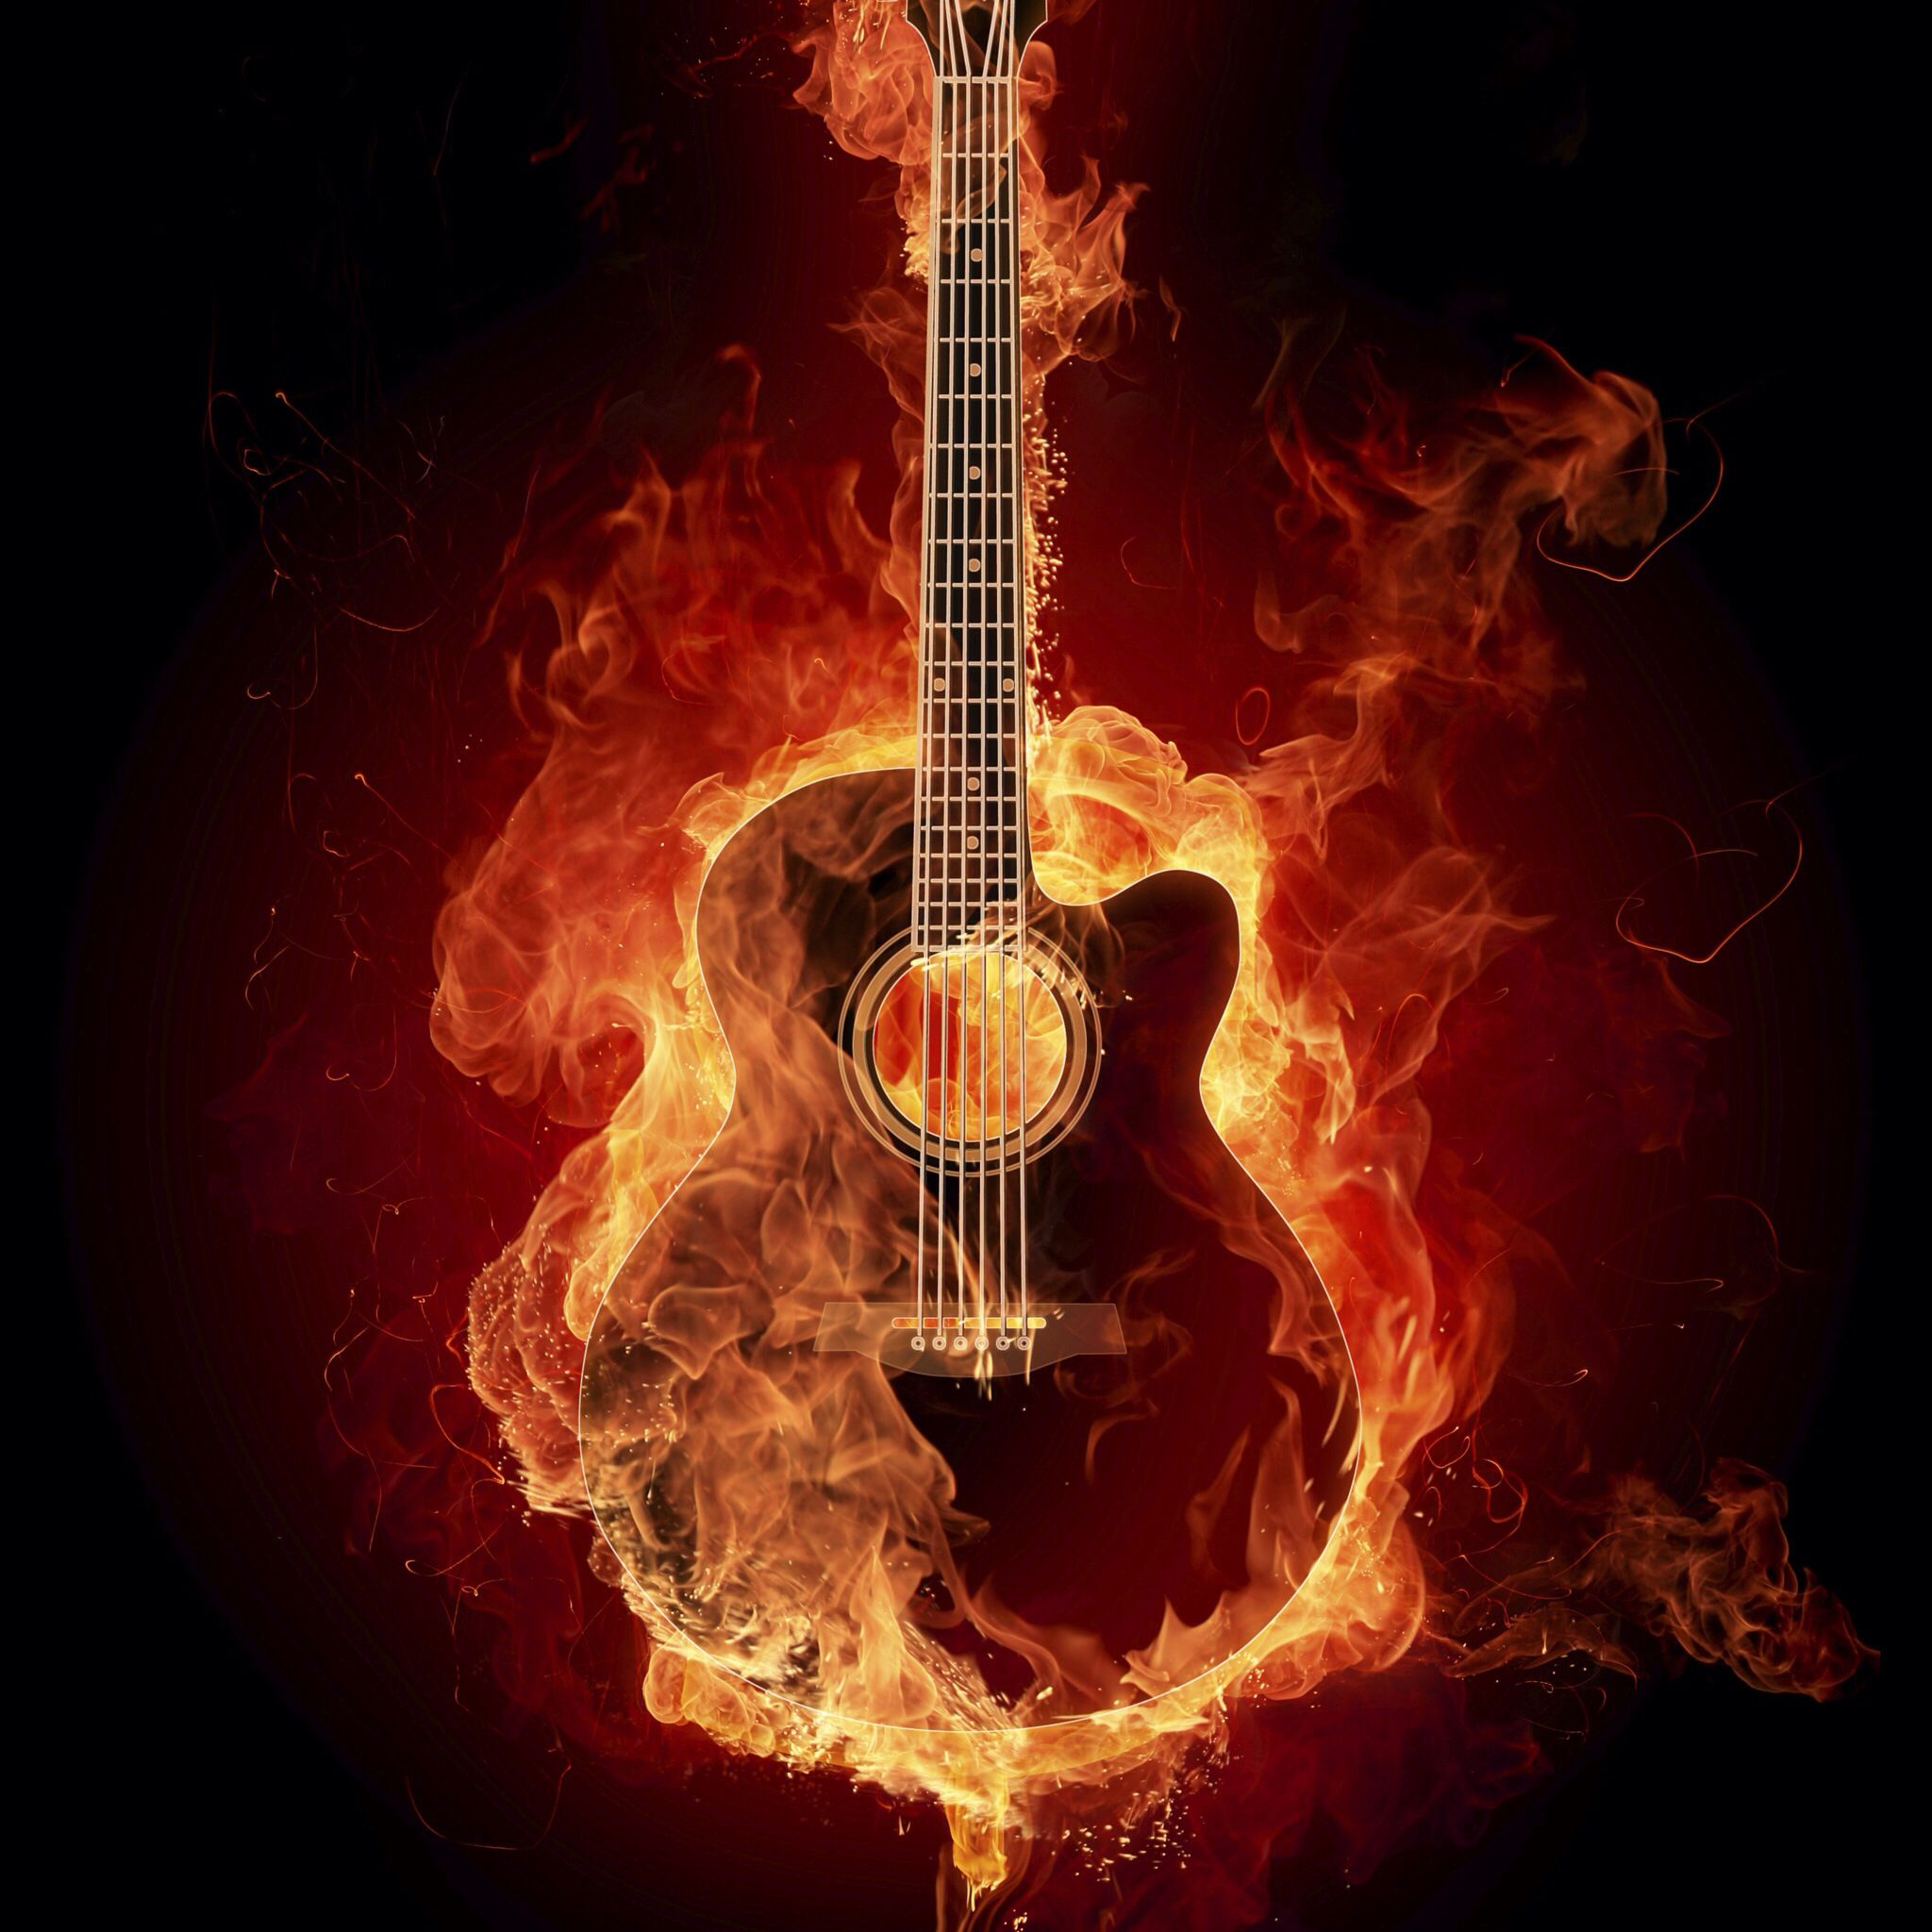 cool guitar wallpaper guitars pinterest guitars